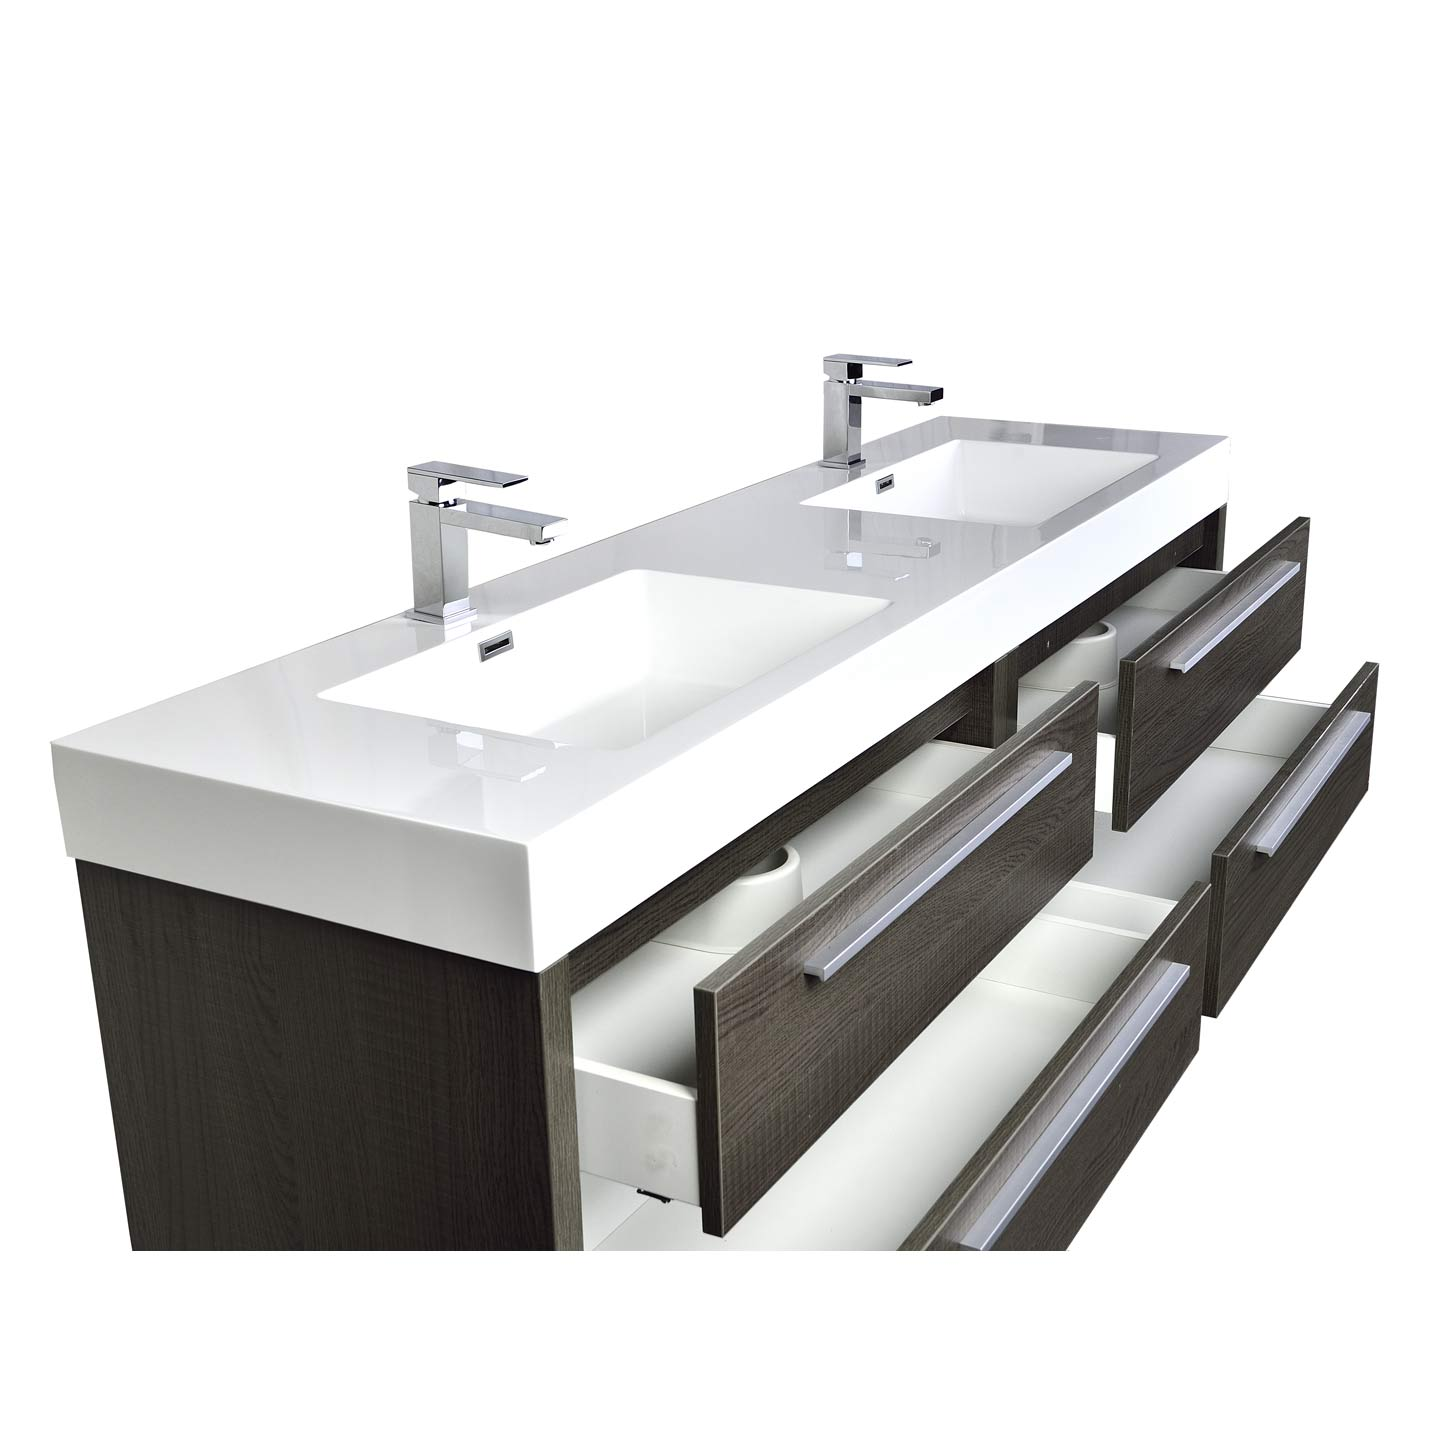 Bathroom vanity san francisco - Mula 71 Contemporary Double Vanity Set Rs La1810 Oak